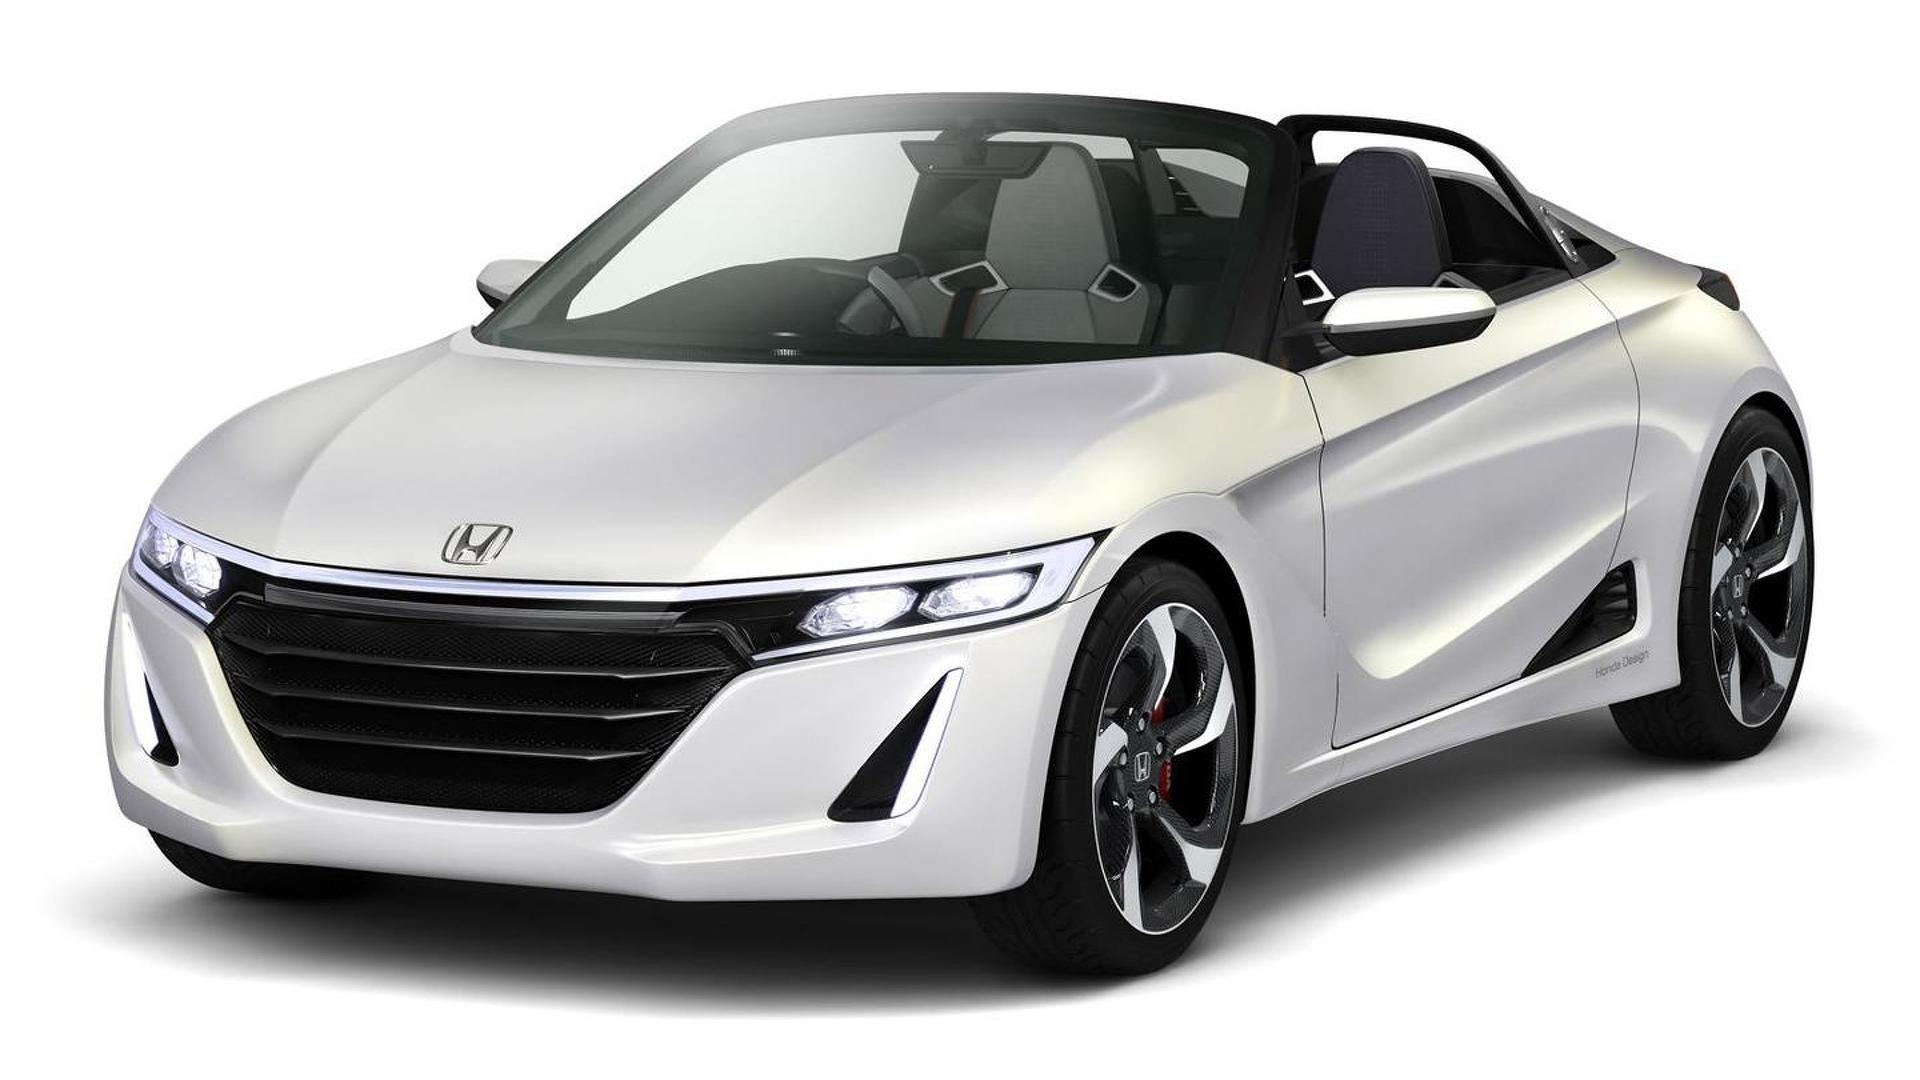 Honda S660 could spawn a high-performance S1000